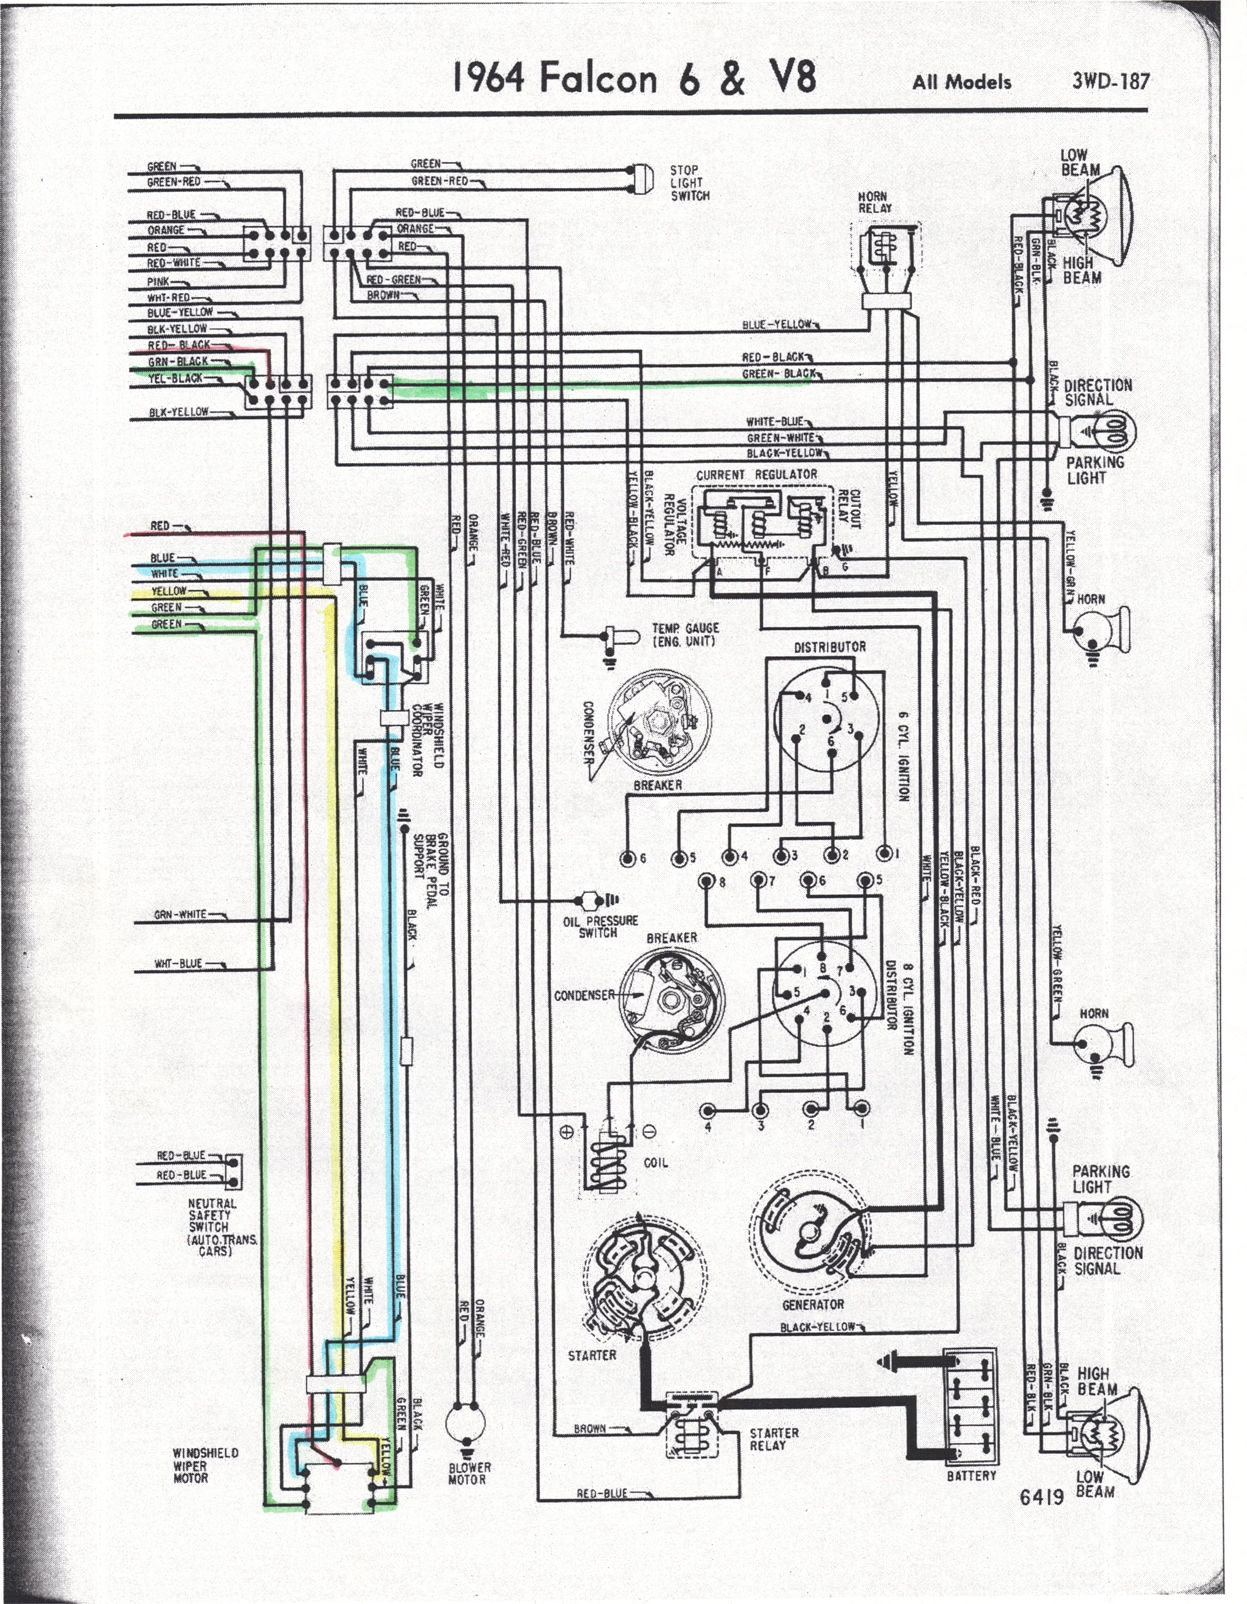 1964 Gto Wiring Diagram | Wiring Diagram  Gto Wiring Diagram on 1967 gto wiring diagram, 1970 oldsmobile wiring diagram, 1970 challenger wiring diagram, 1970 camaro wiring diagram, 1970 blazer wiring diagram, 1970 jeep wiring diagram, 1970 corvette wiring diagram, 68 gto dash wiring diagram, 1970 fairlane wiring diagram, 1969 gto wiring diagram, 2005 gto wiring diagram, 1966 gto wiring diagram, 1970 gto oil filter, 1964 gto wiring diagram, 1970 mustang wiring diagram, 2004 gto wiring diagram, 1971 gto wiring diagram, 1970 malibu wiring diagram, 1965 gto wiring diagram, 1970 nova wiring diagram,